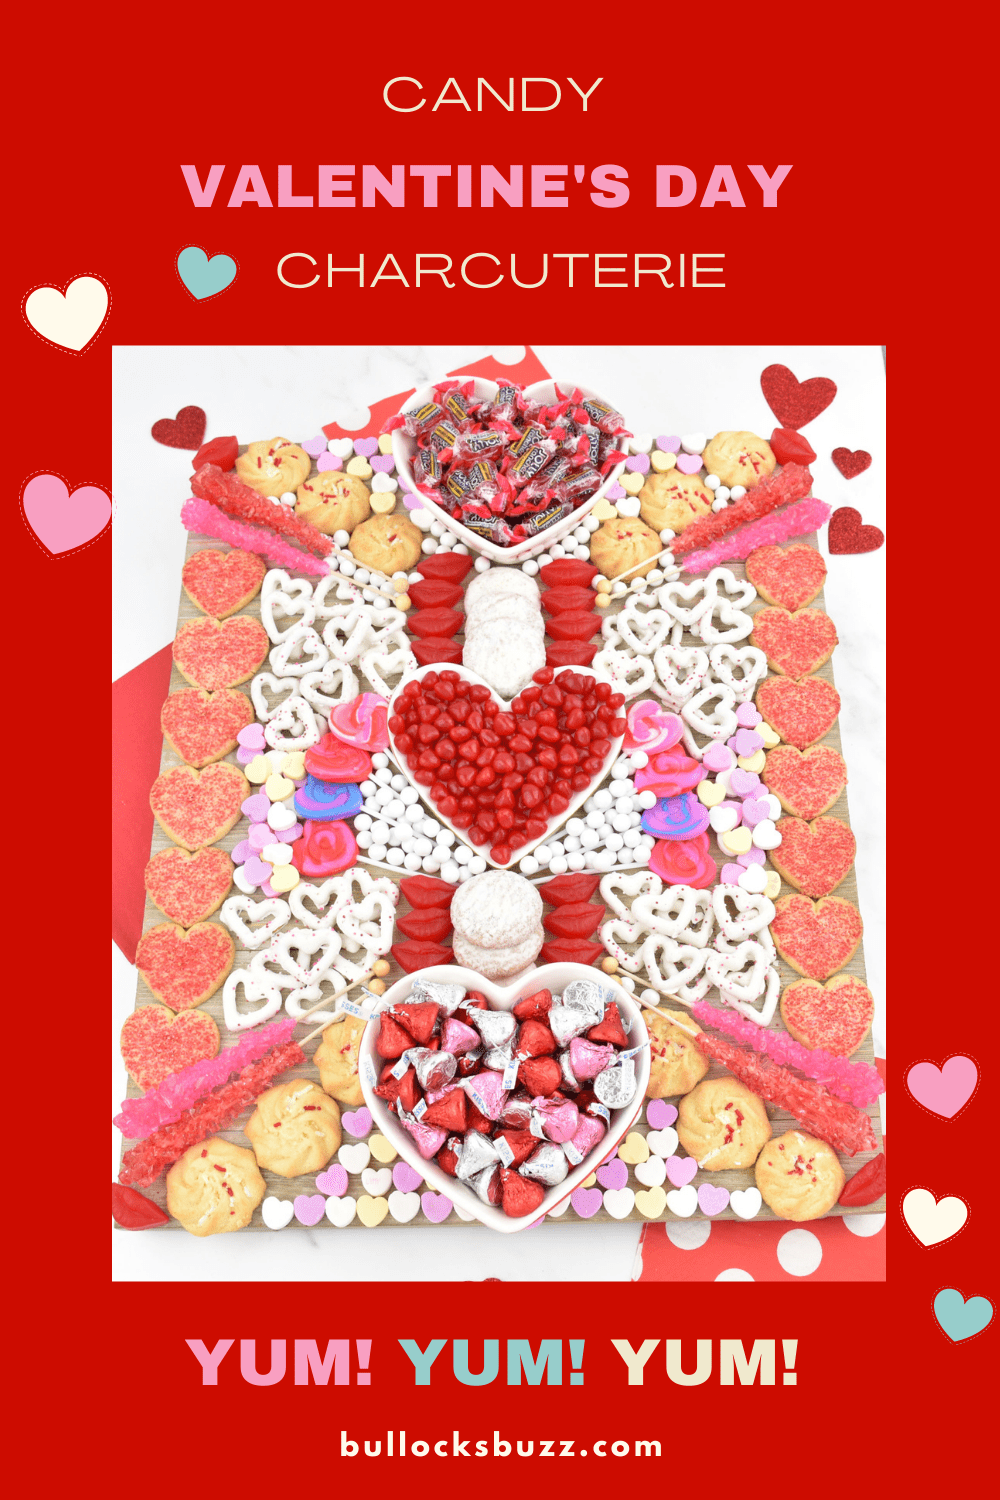 This colorful and cheerful Valentine's Day Candy Charcuterie Board is SO much tasty fun! Filled with heart-shaped cookies, candies, and chocolate-covered pretzels, this dessert board is the perfect way to celebrate the sweetest day of the year! #ValentinesDay #Charcuterie